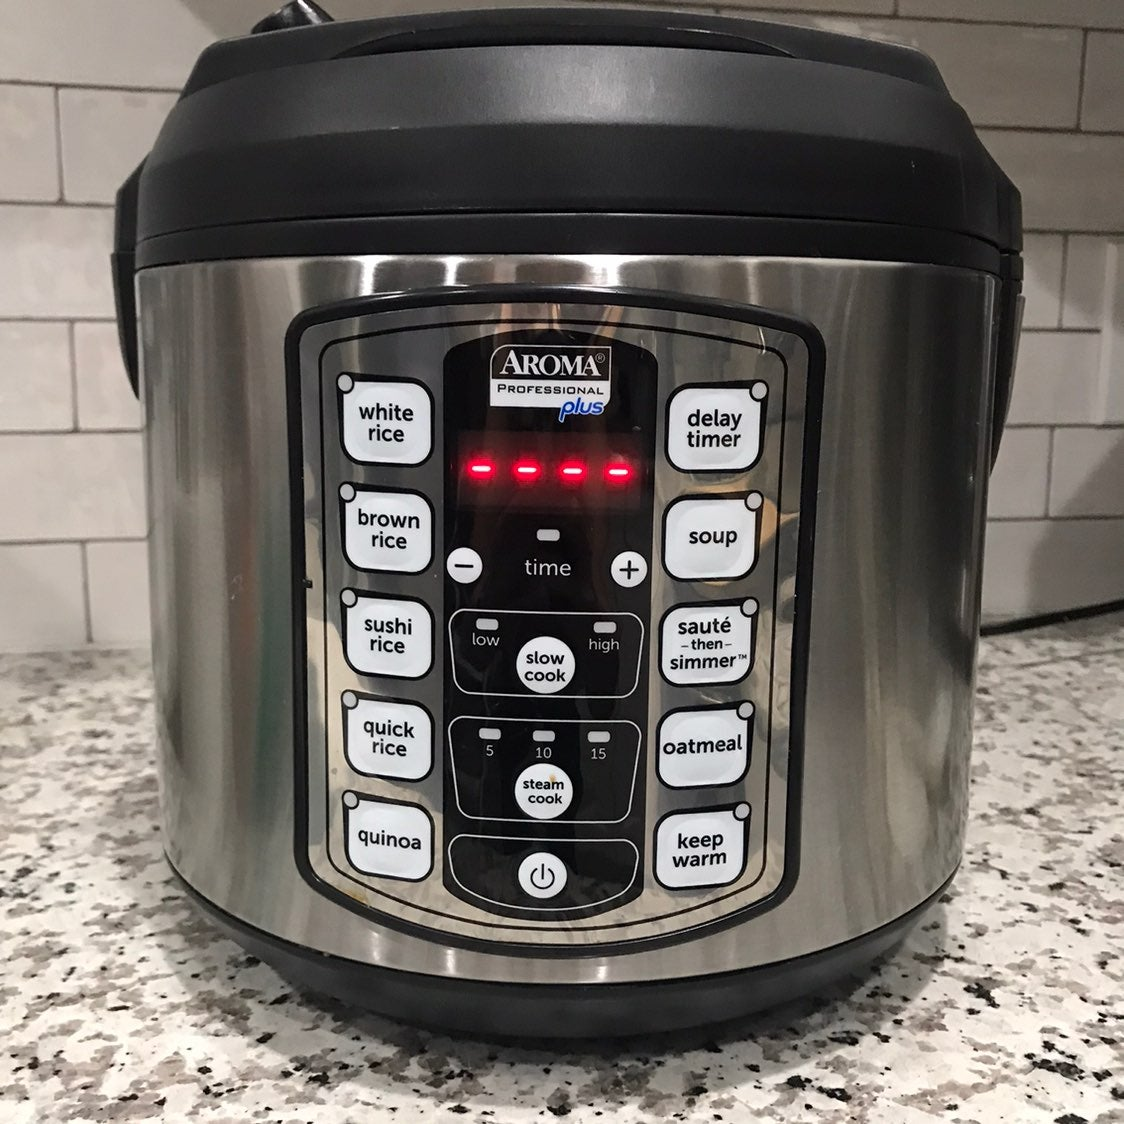 Aroma rice cooker / multi cooker